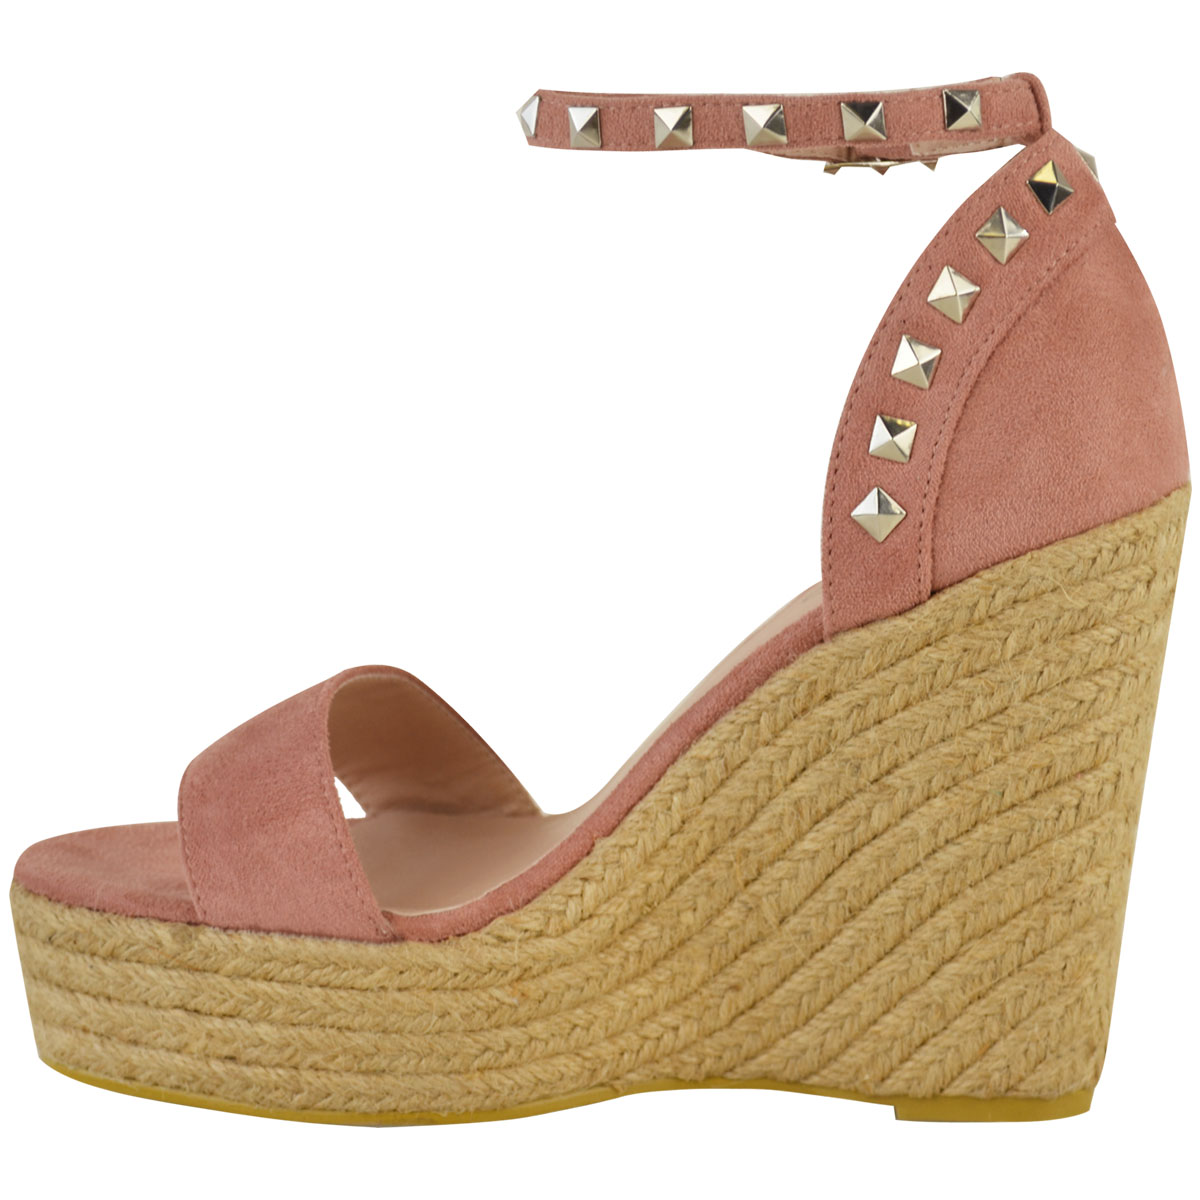 New-Womens-Stud-Espadrille-Wedge-Summer-Sandal-Ladies-Rose-Gold-Party-Shoes-Size thumbnail 16